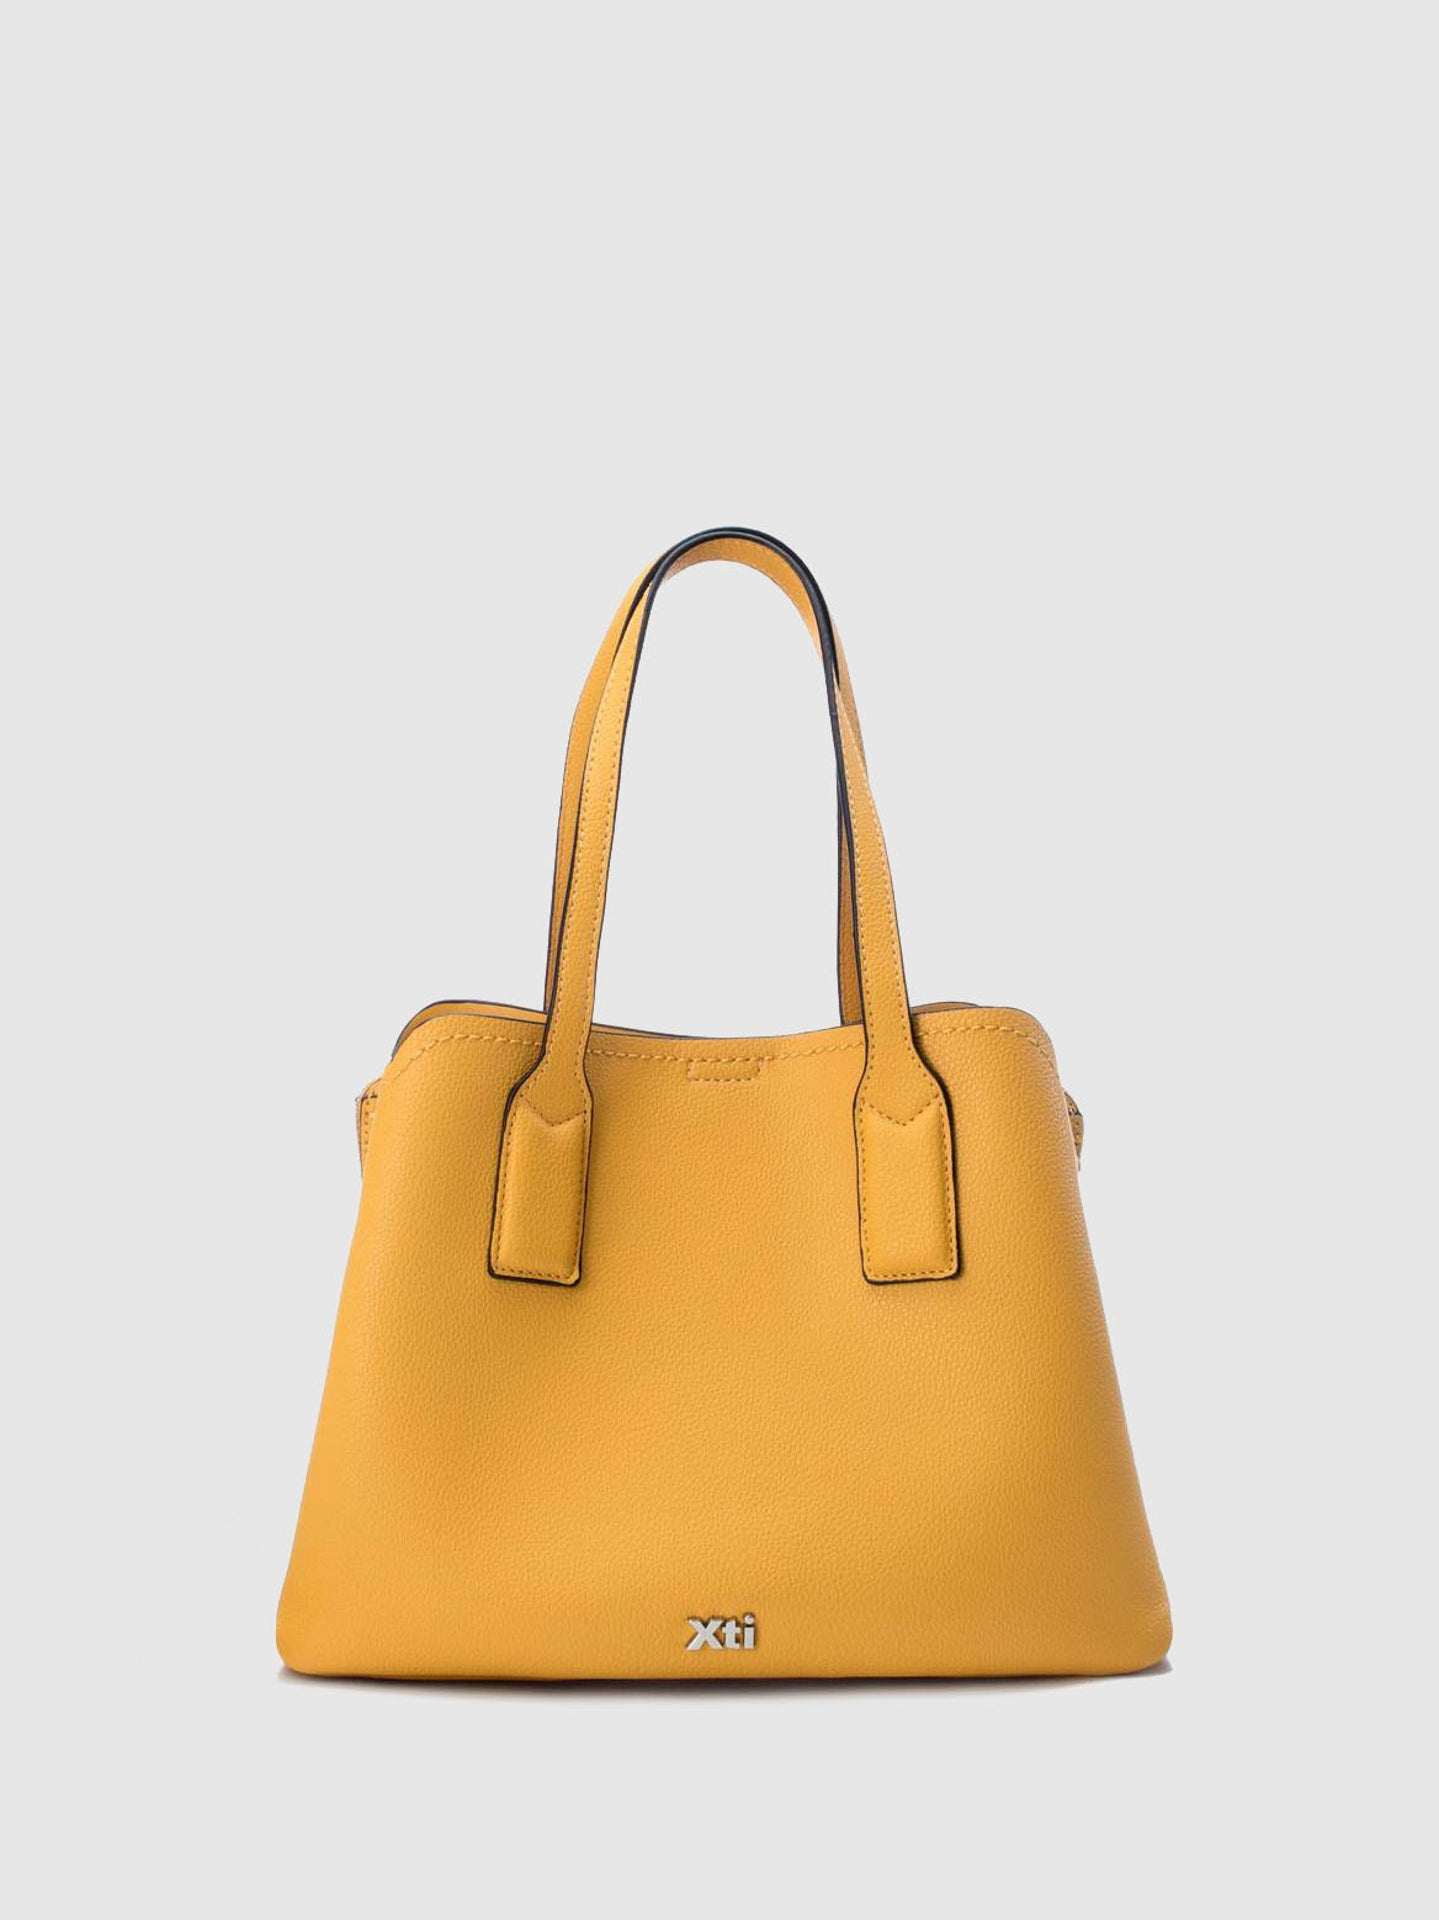 XTI Yellow Handbag